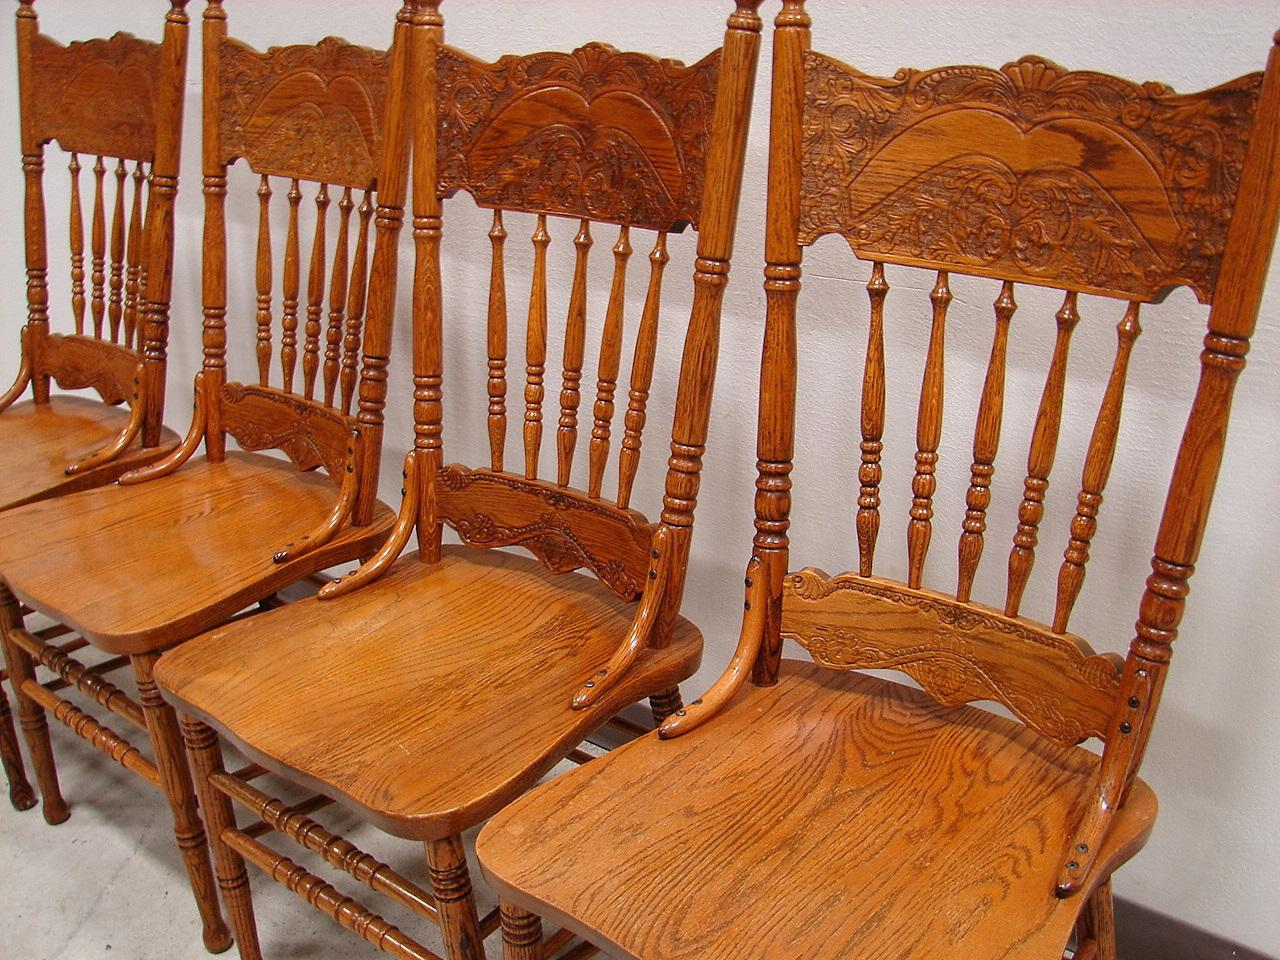 French Kitchen Chairs: French Country Oak Dining Kitchen Chair Set